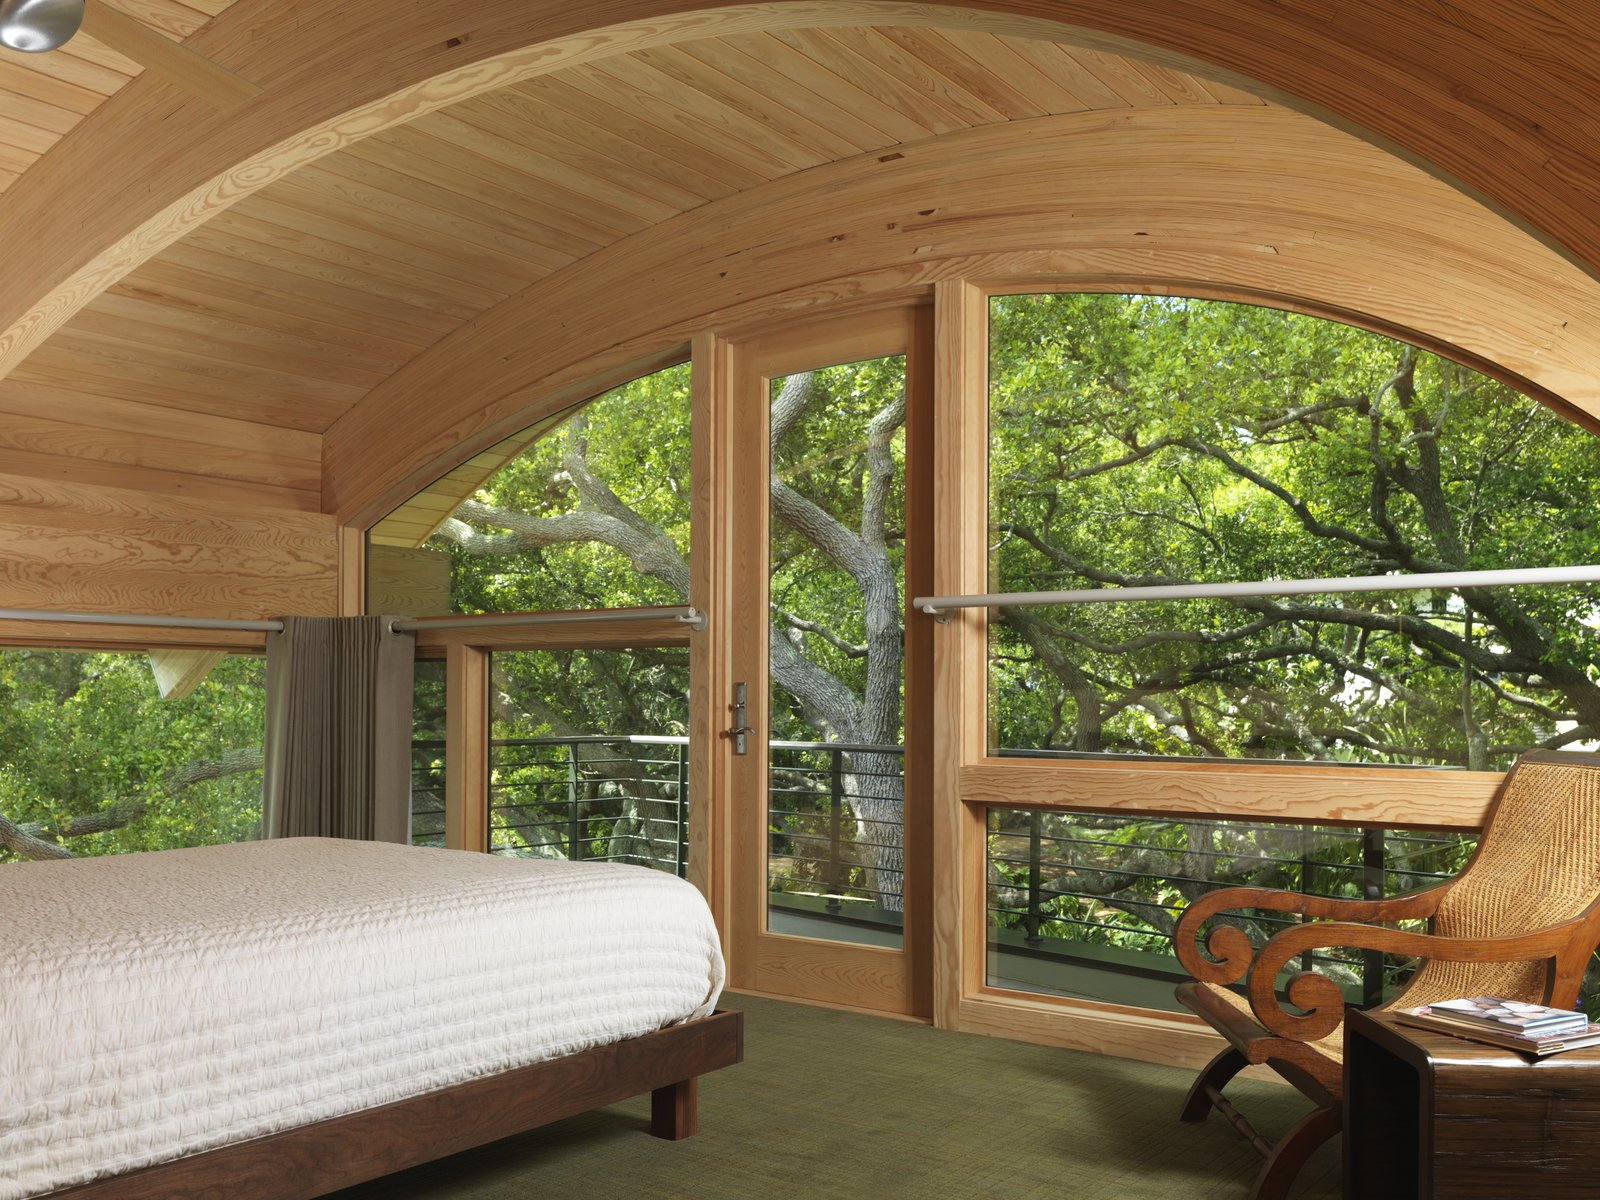 Casey Key House  In this playful treehouse-style bedroom, custom arched windows surround the room and meet the wooden ceiling. Elements of wood and modern architecture draw the sound of rustling leaves and midday breeze into this cozy treetop retreat.  Architect: Jerry Sparkman; Architecture Firm: Sweet Sparkman Architects; Location: Casey Key, FL   #marvin #windows #doors  #indoor #outdoor #transition #caseykeys #FL